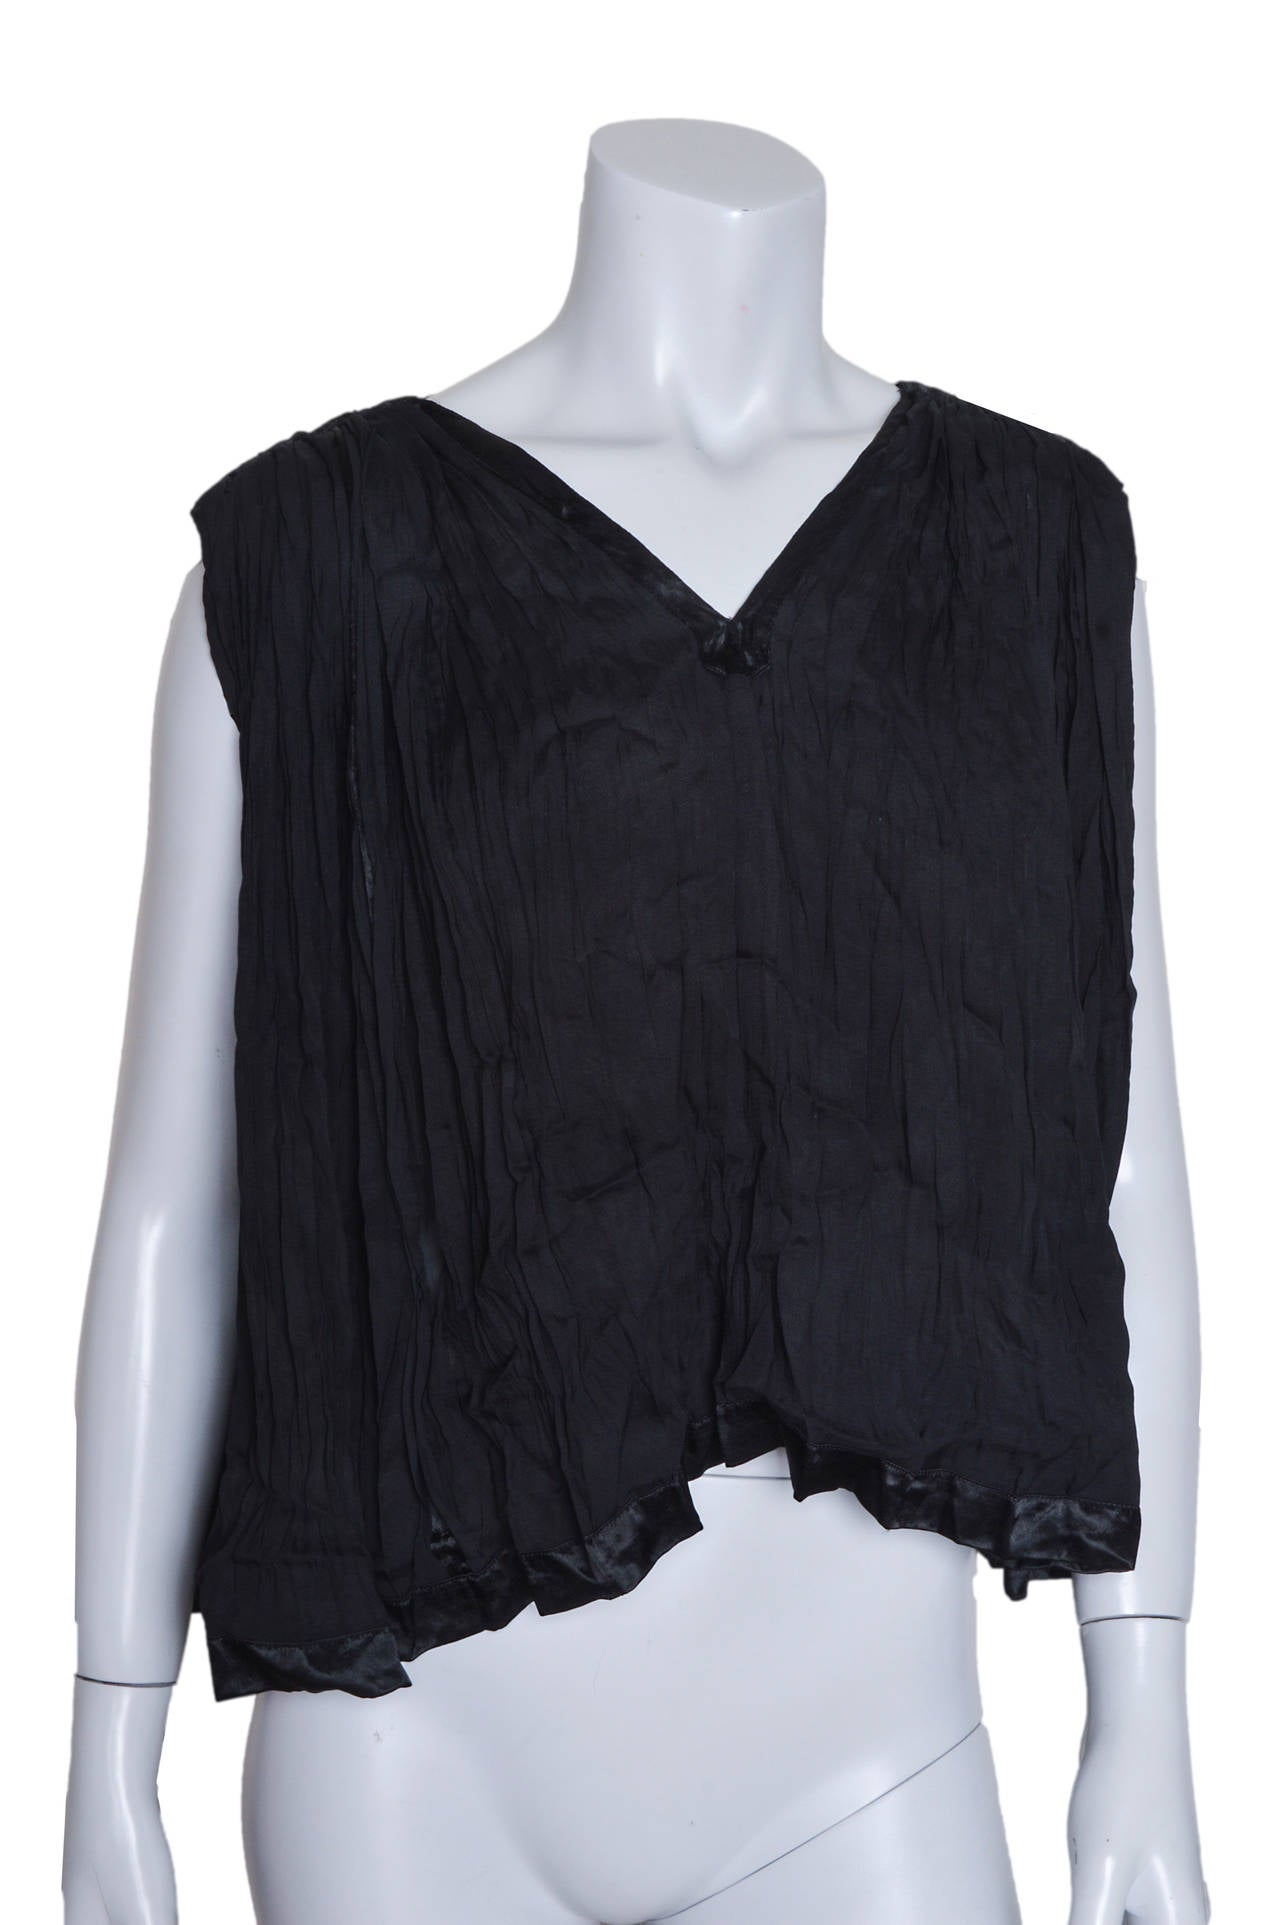 Elegant Issey Miyake black top and skirt set.